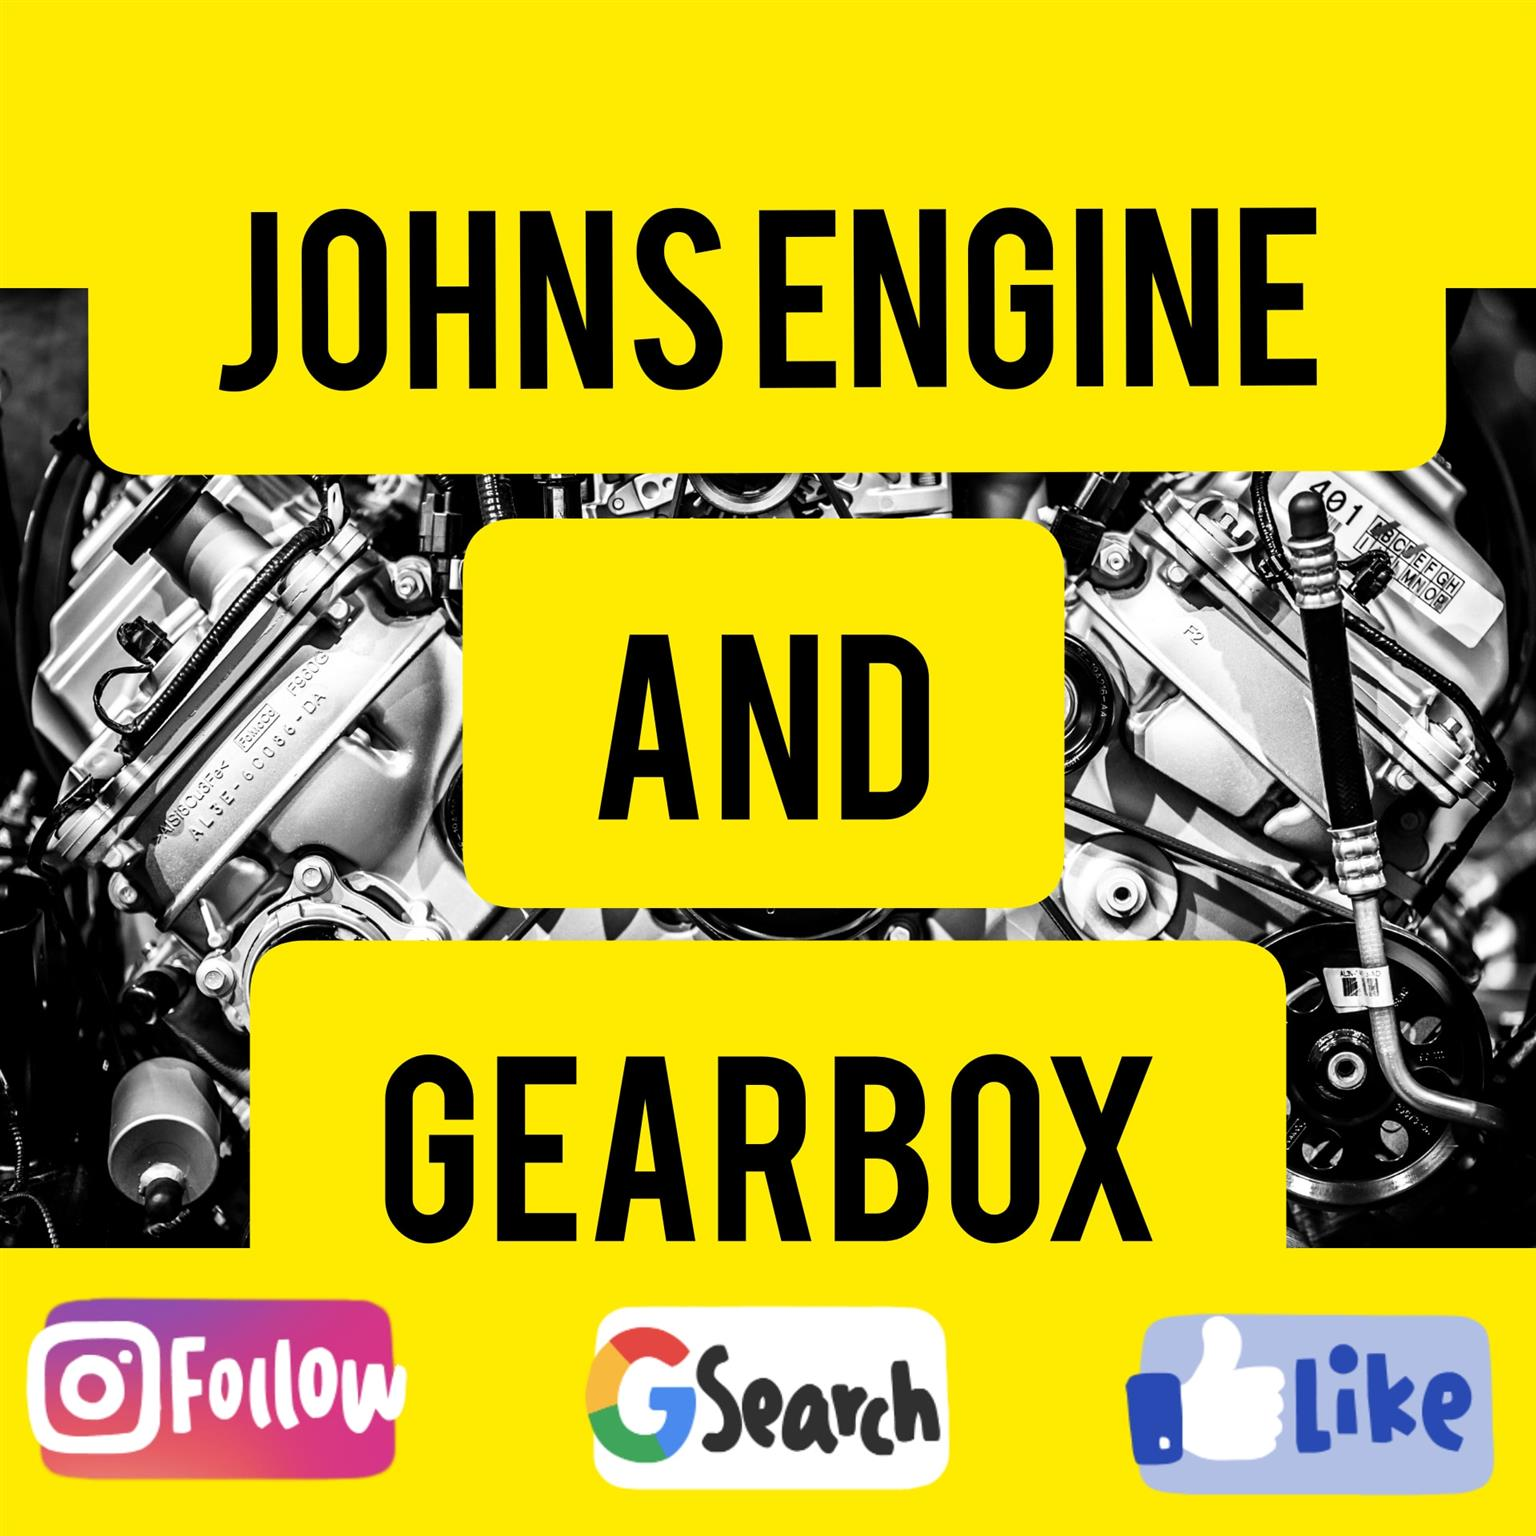 John's Engine and Gearbox